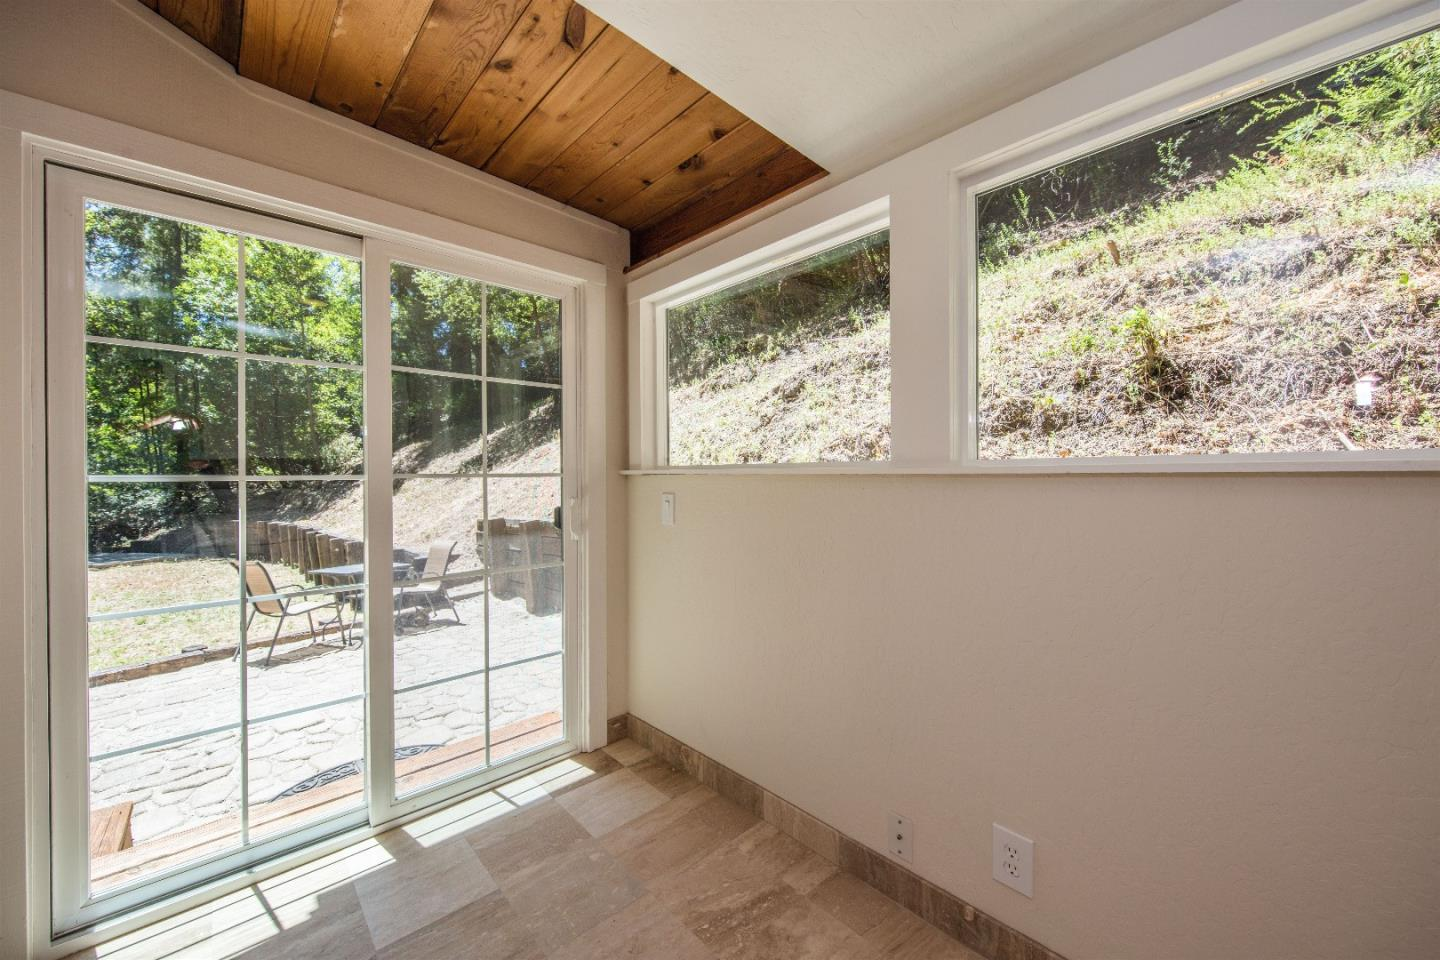 Additional photo for property listing at 120 Greenwood Road  Boulder Creek, Kalifornien 95006 Vereinigte Staaten